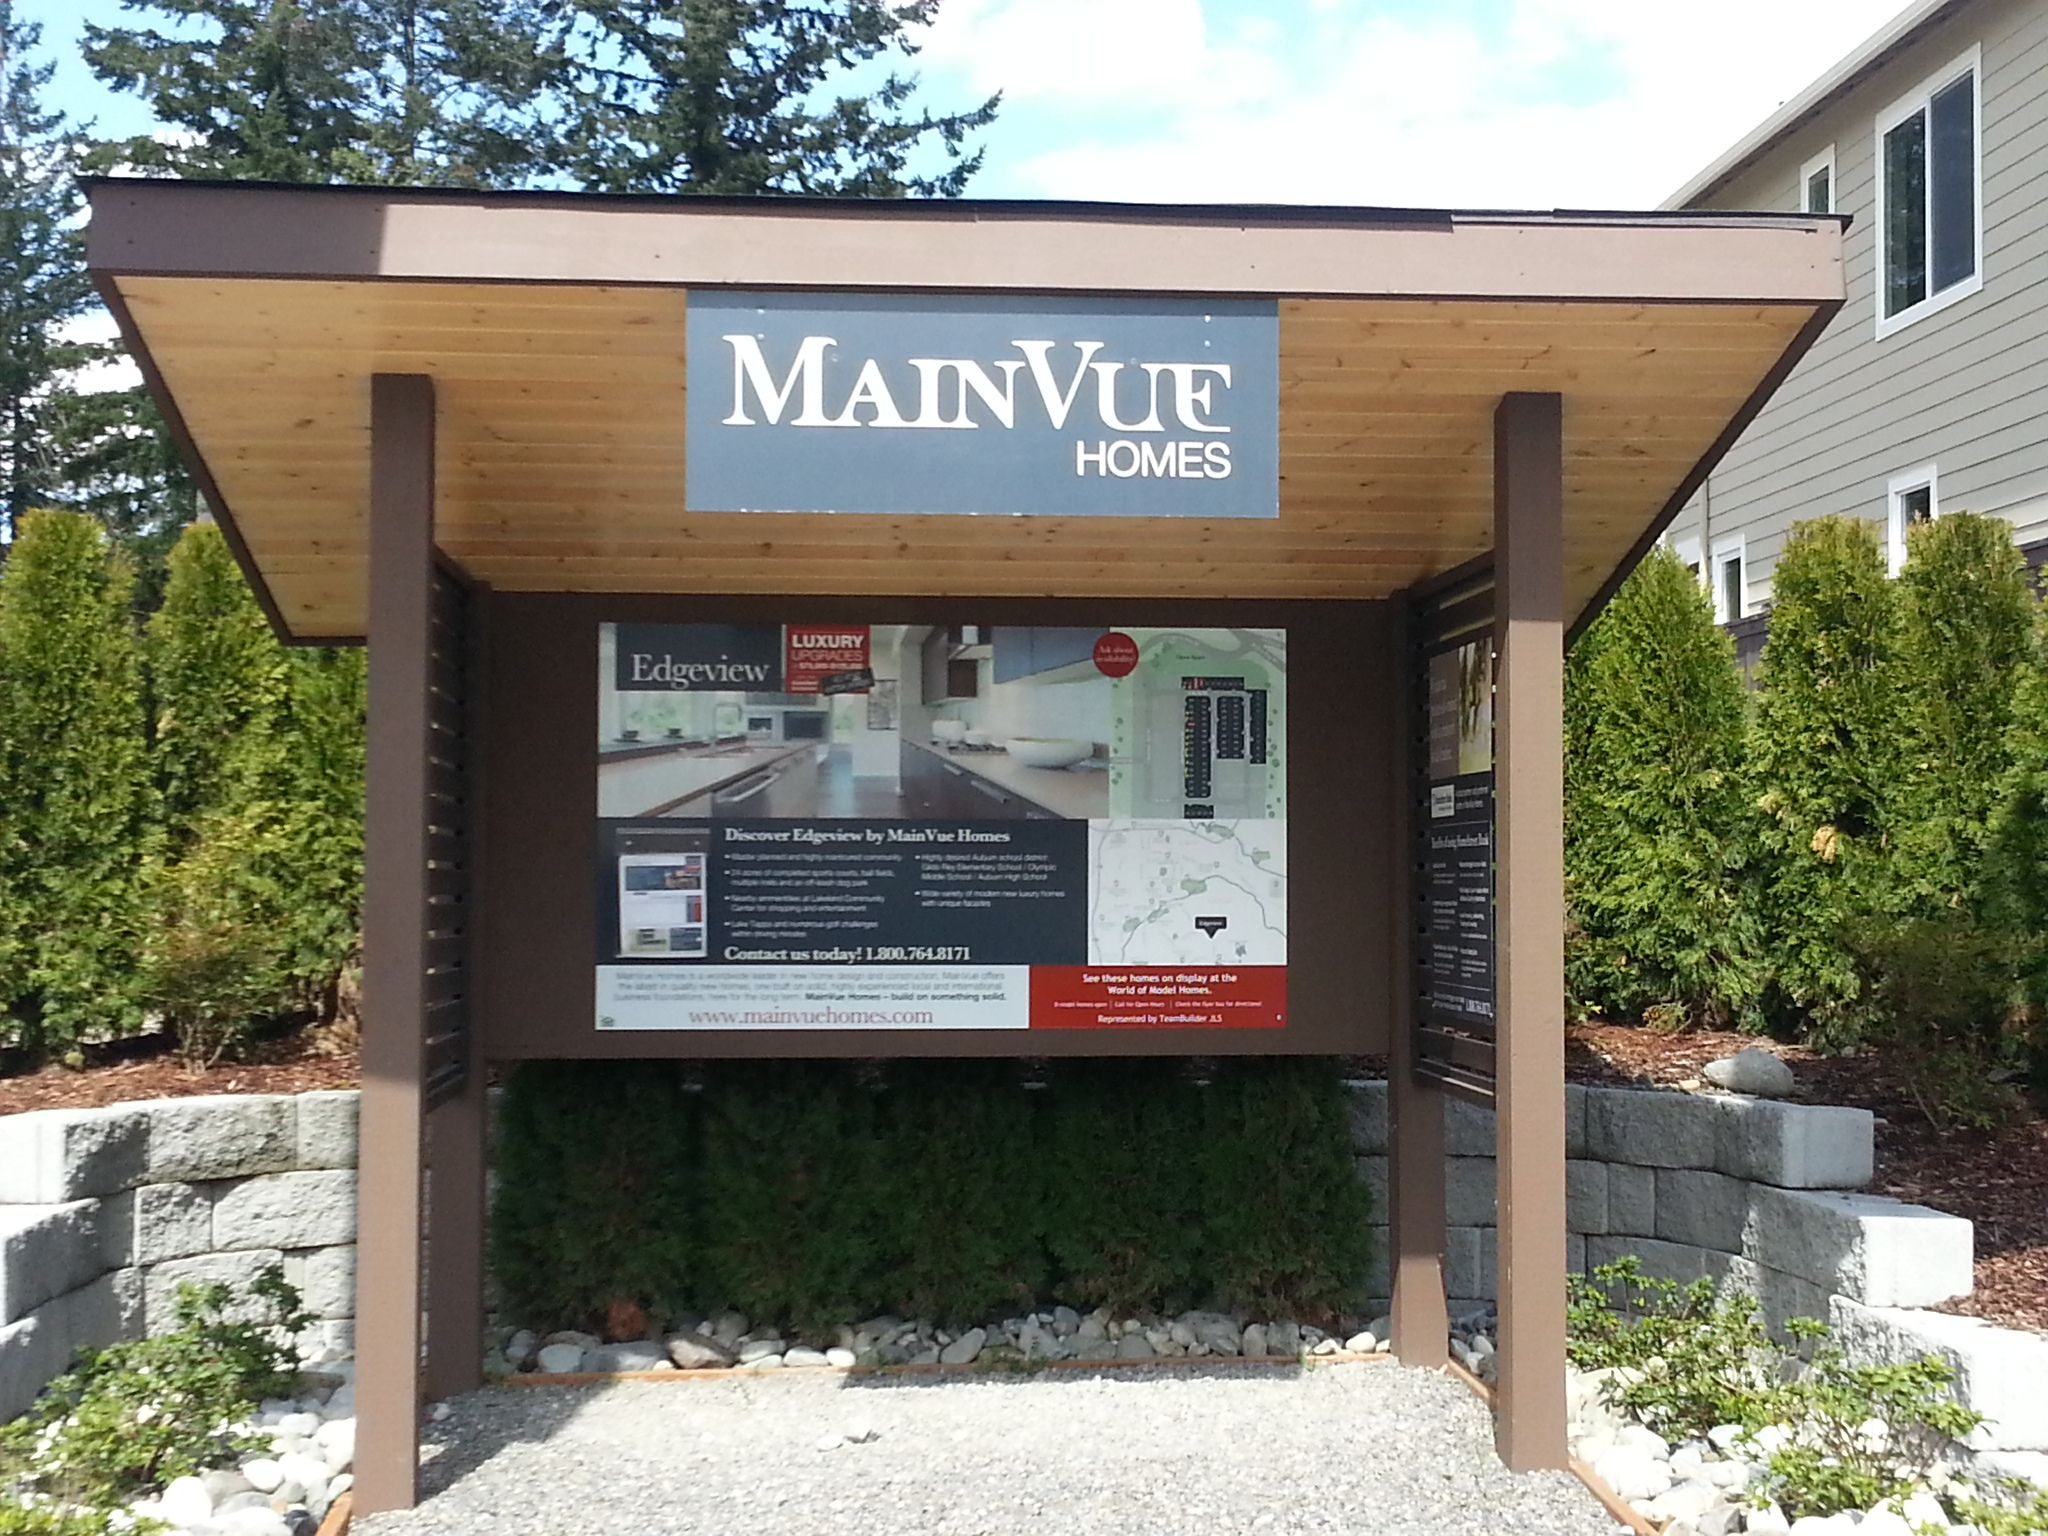 Mainvue homes in auburn kent wa for Main view homes